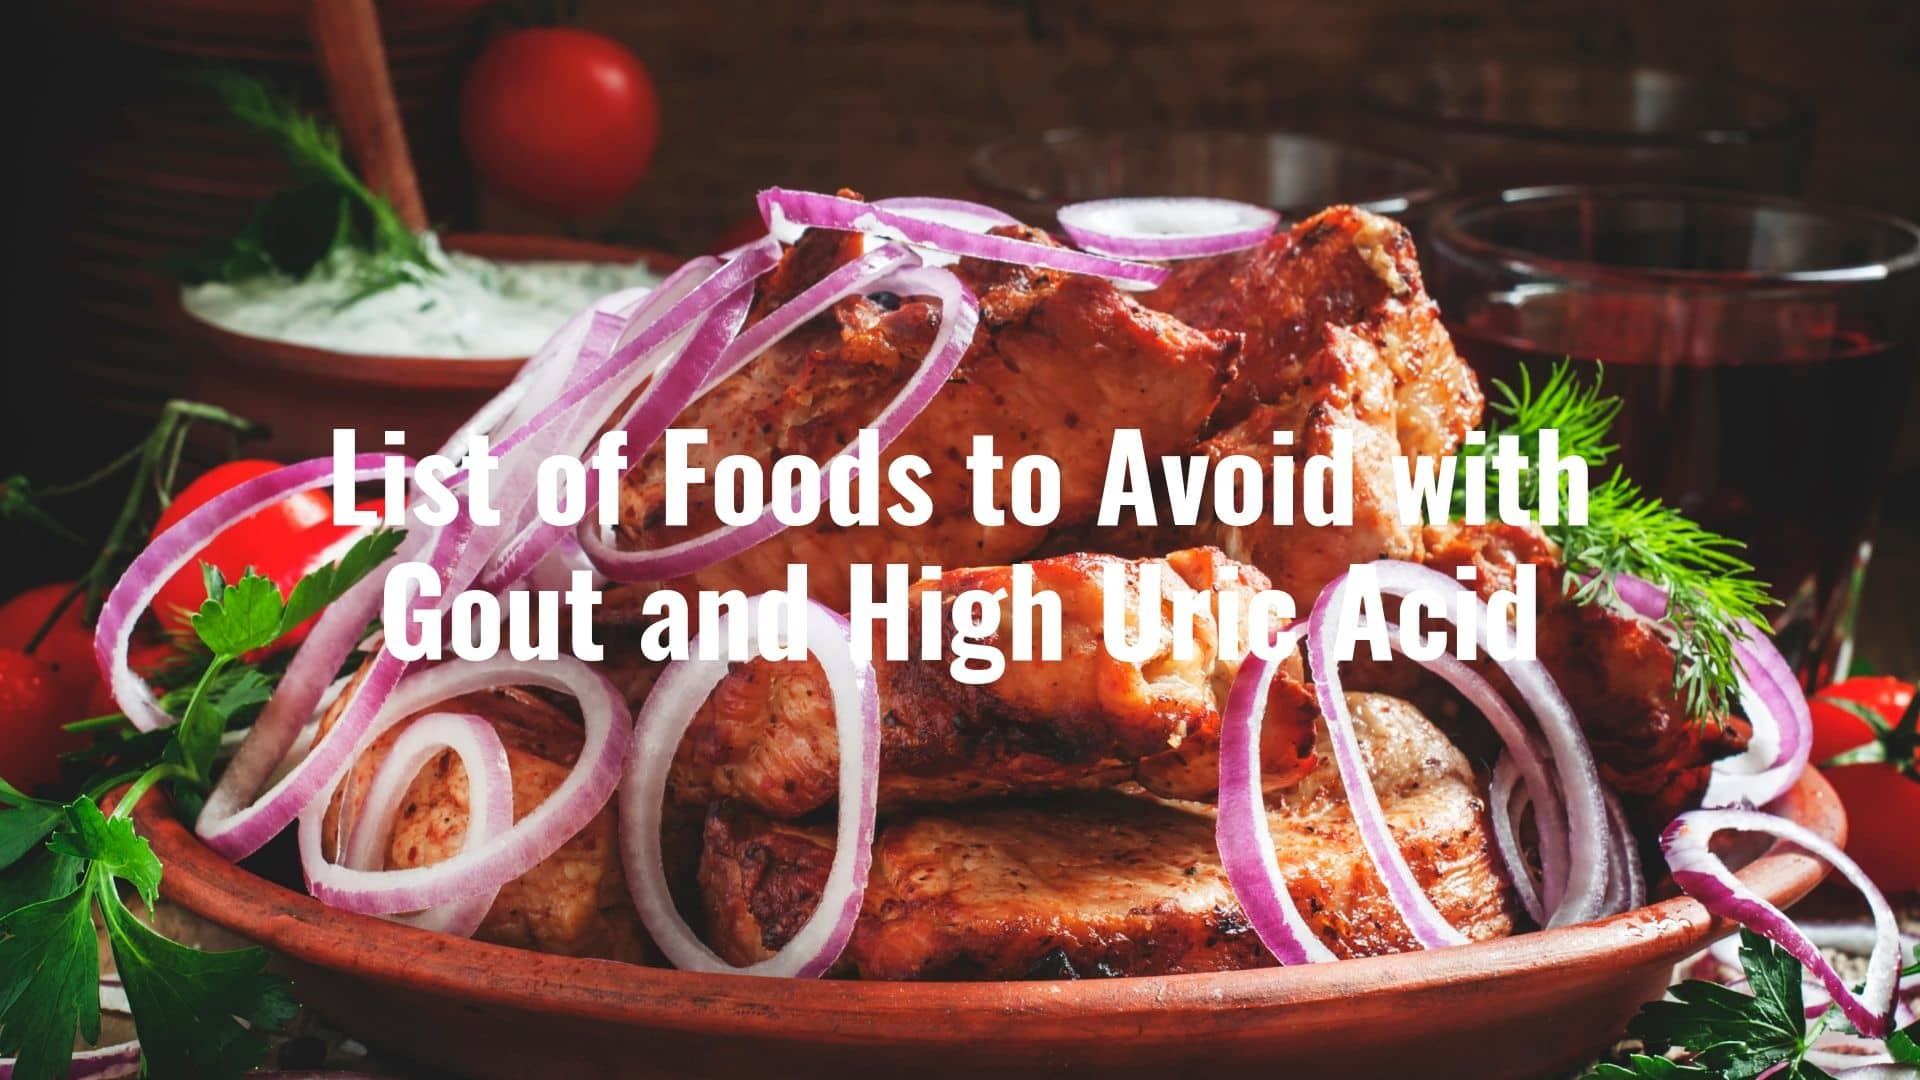 Photo of List of Foods to Avoid with Gout and High Uric Acid